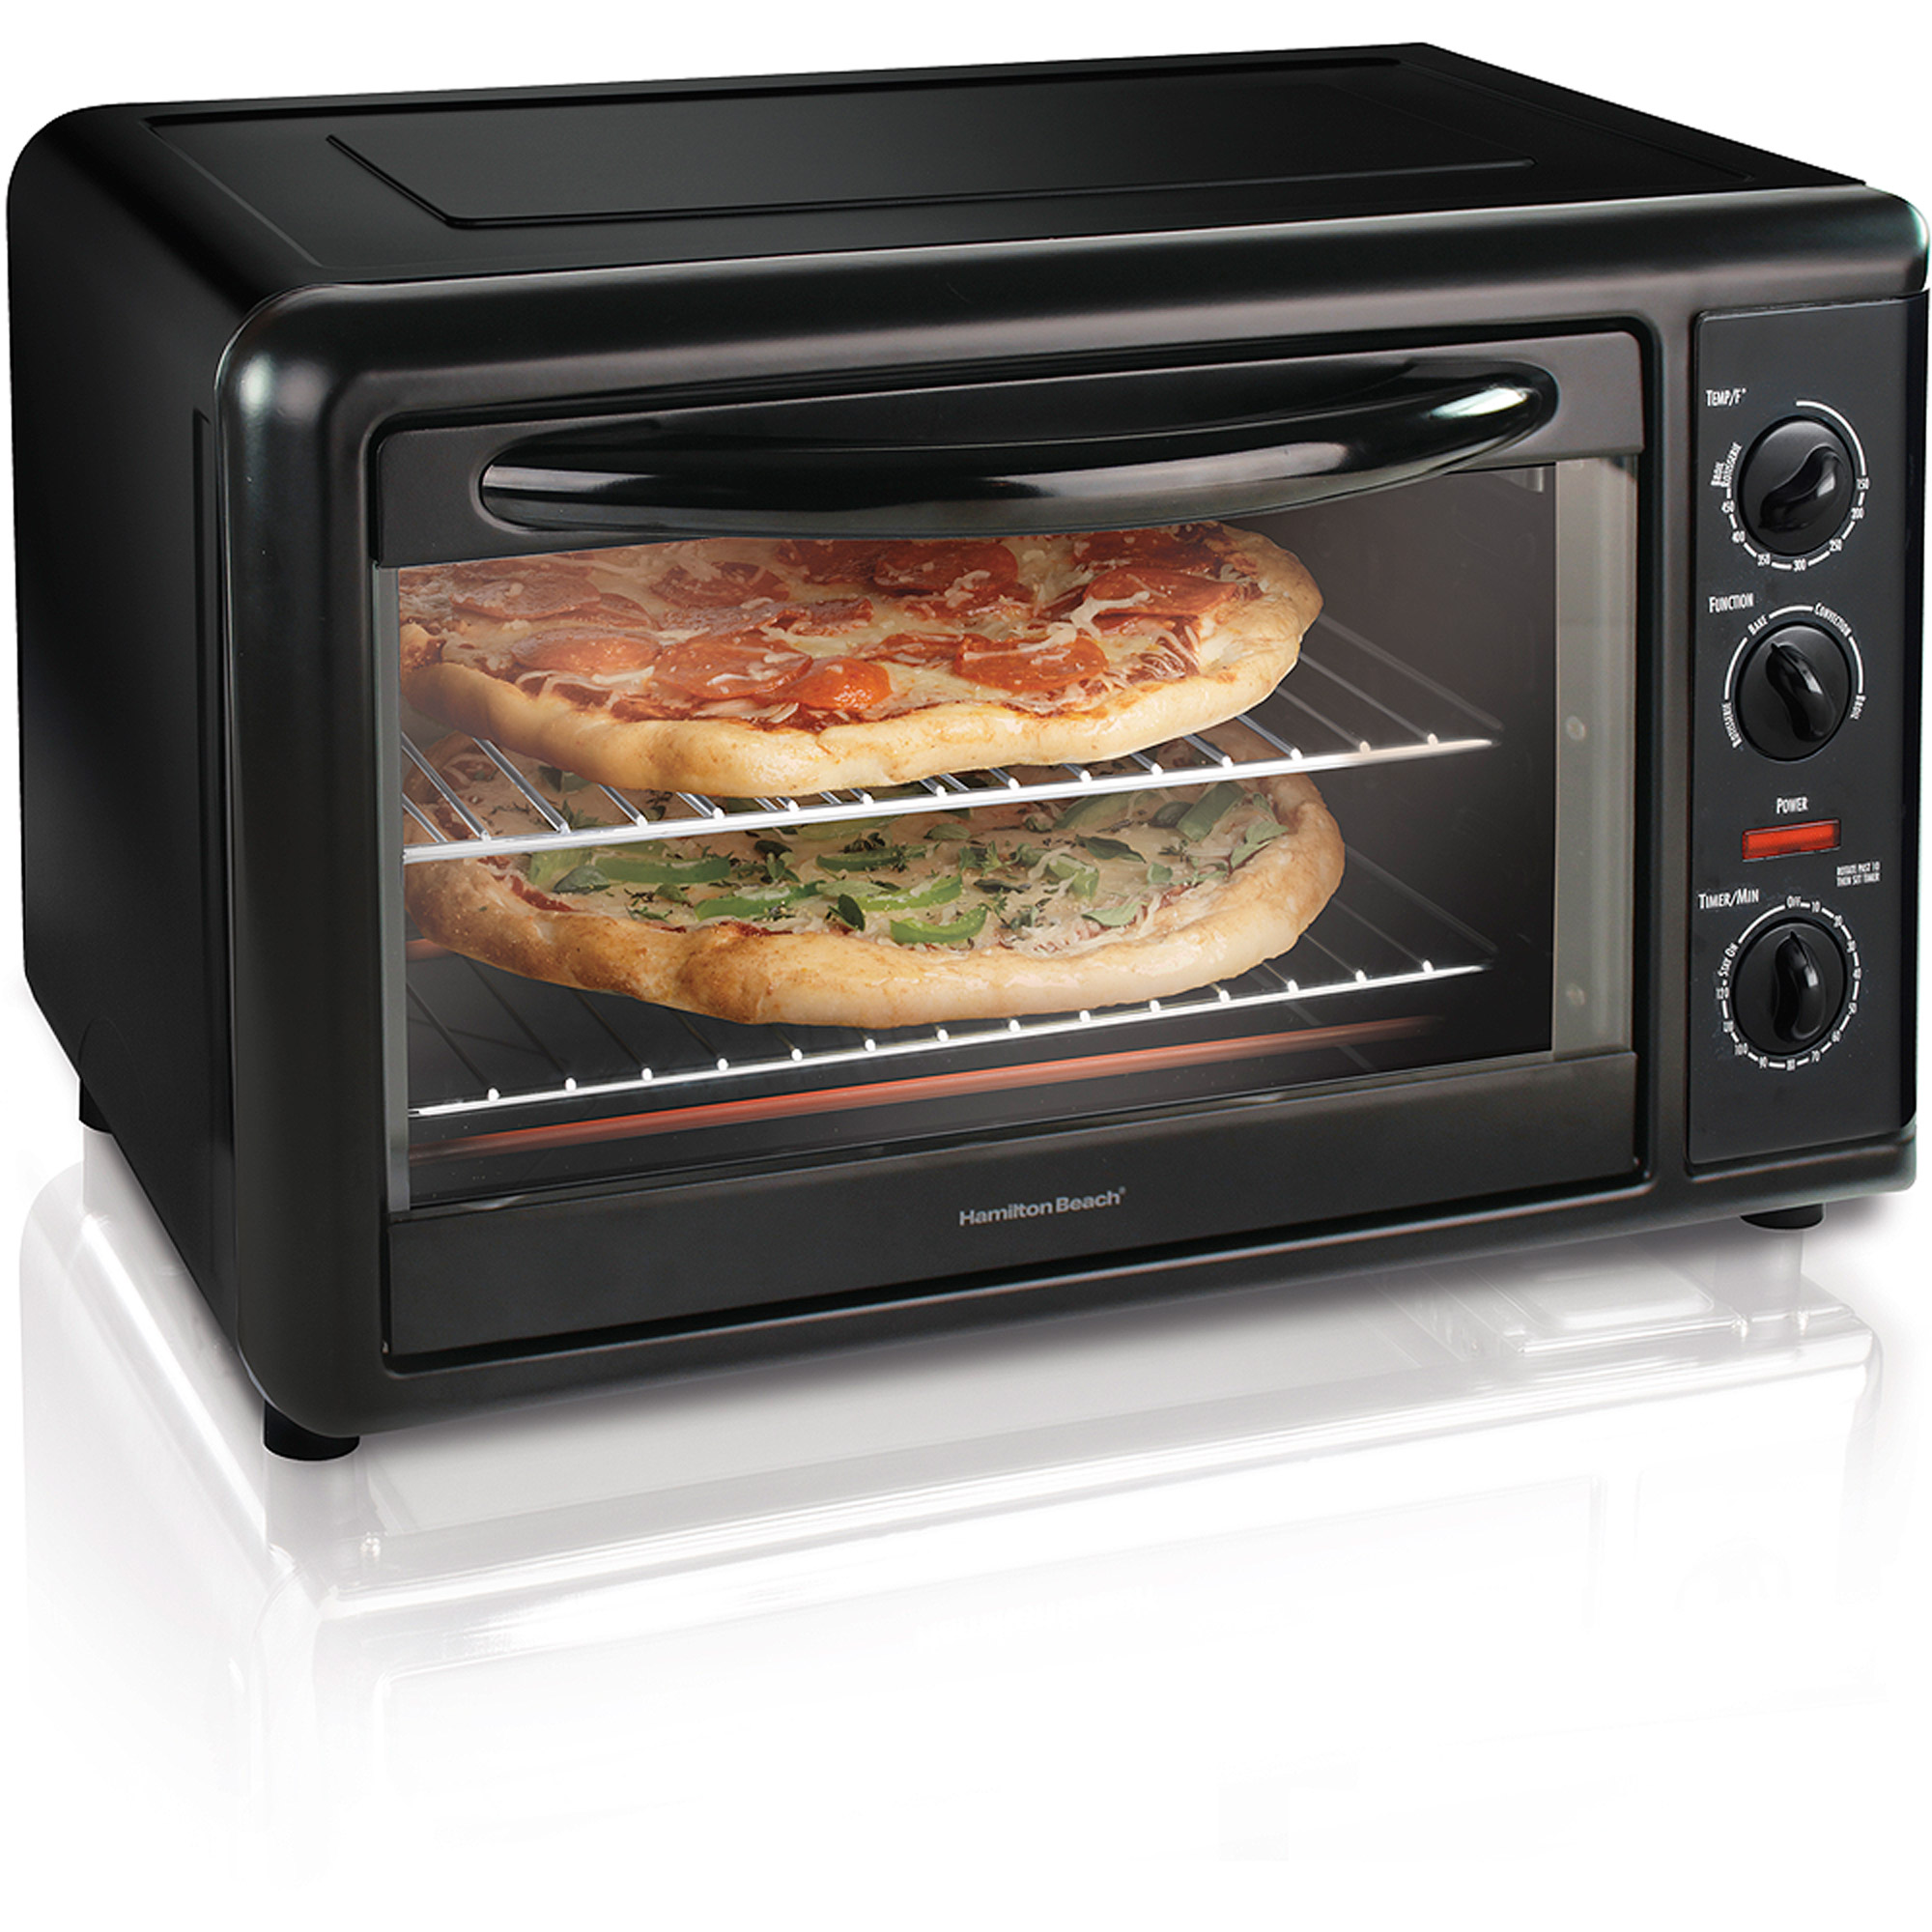 Hamilton Beach Countertop Toaster Oven with Convection | Model# 31121A